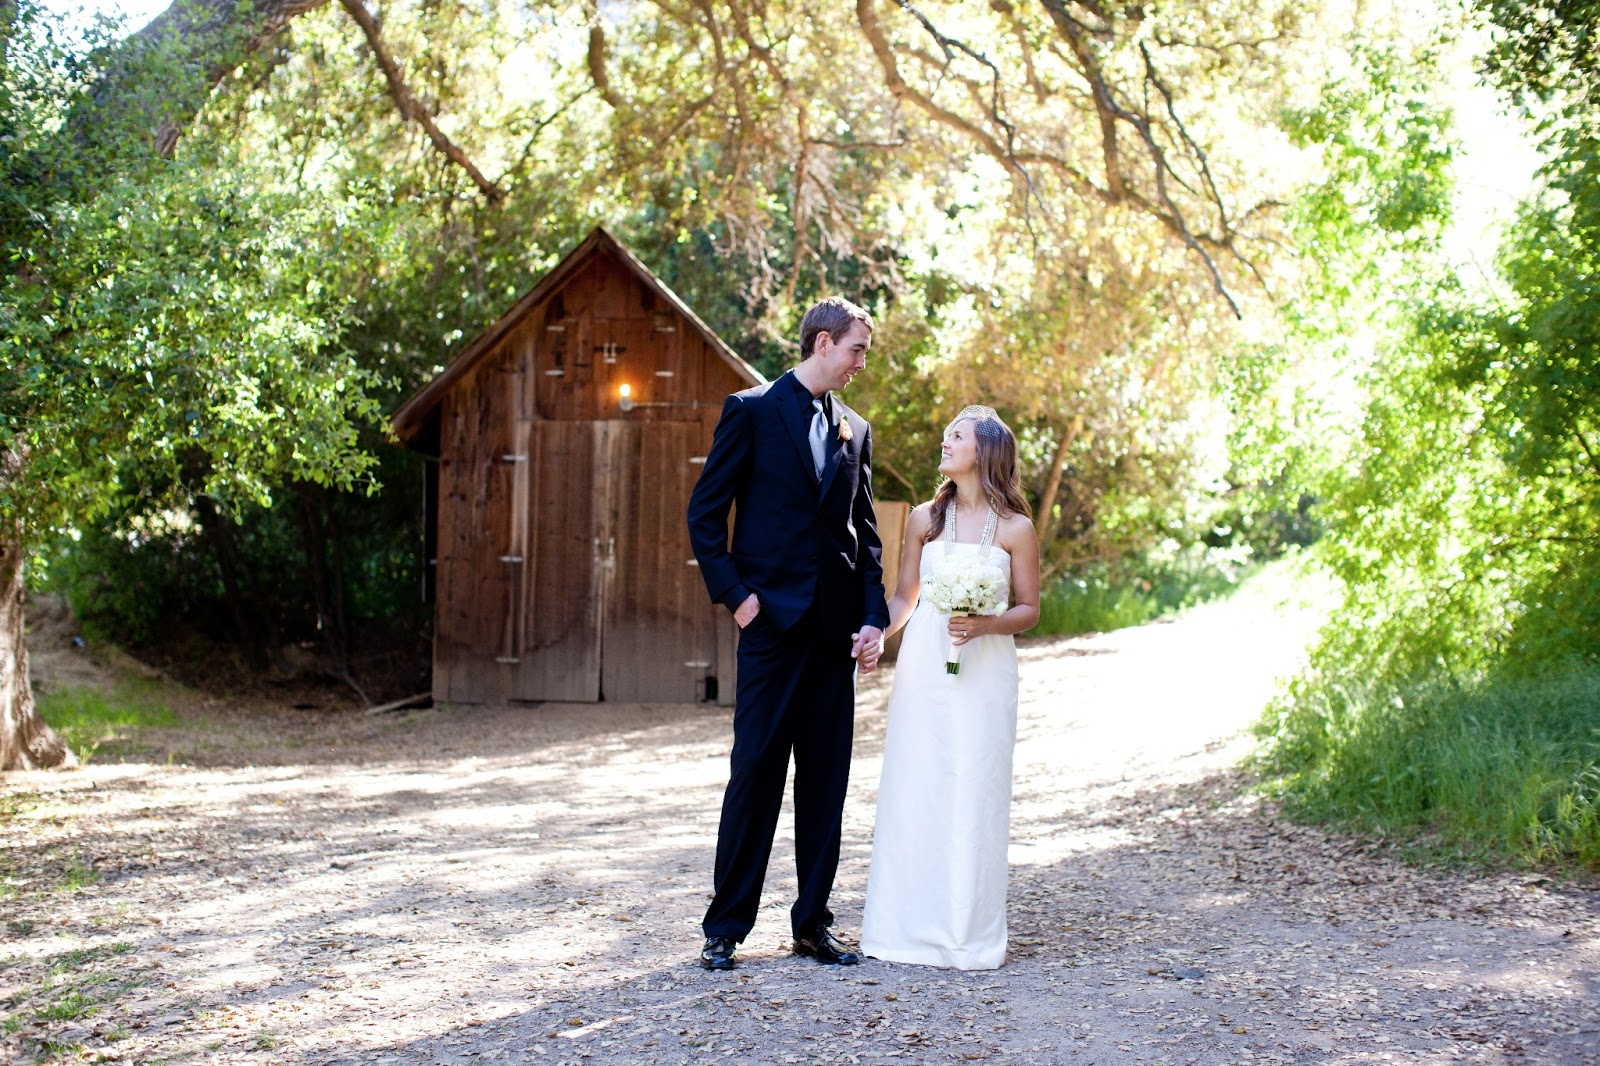 Would You Re-Purpose Your Wedding Dress? // www.thoughtsbynatalie.com